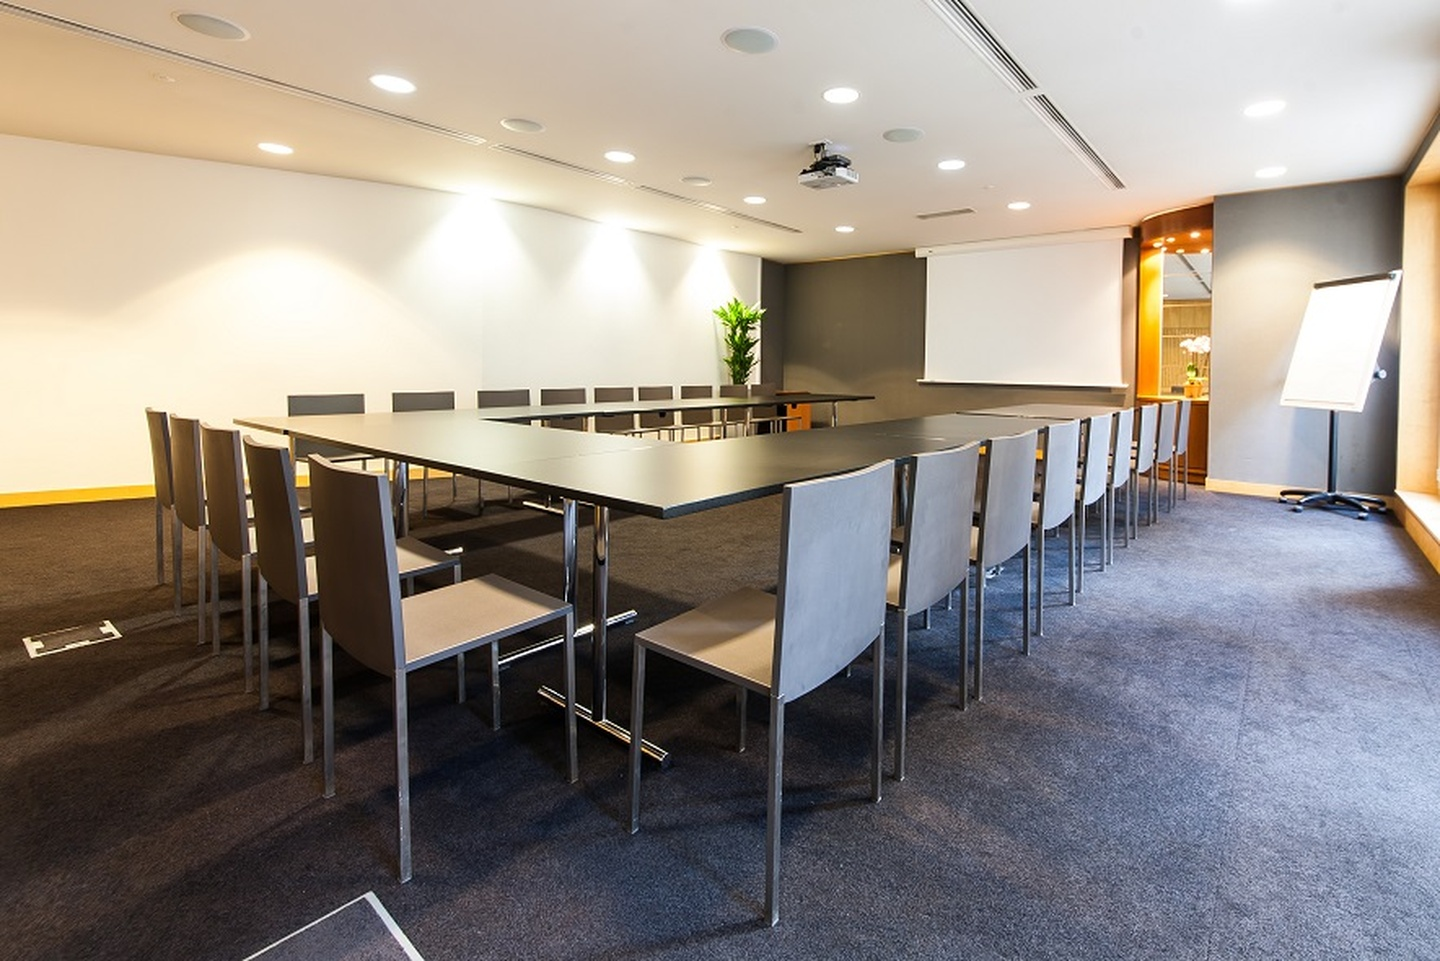 Paris corporate event venues Meetingraum SERVCORP - Edouard VII Conference Center - Tokyo Meeting room image 2